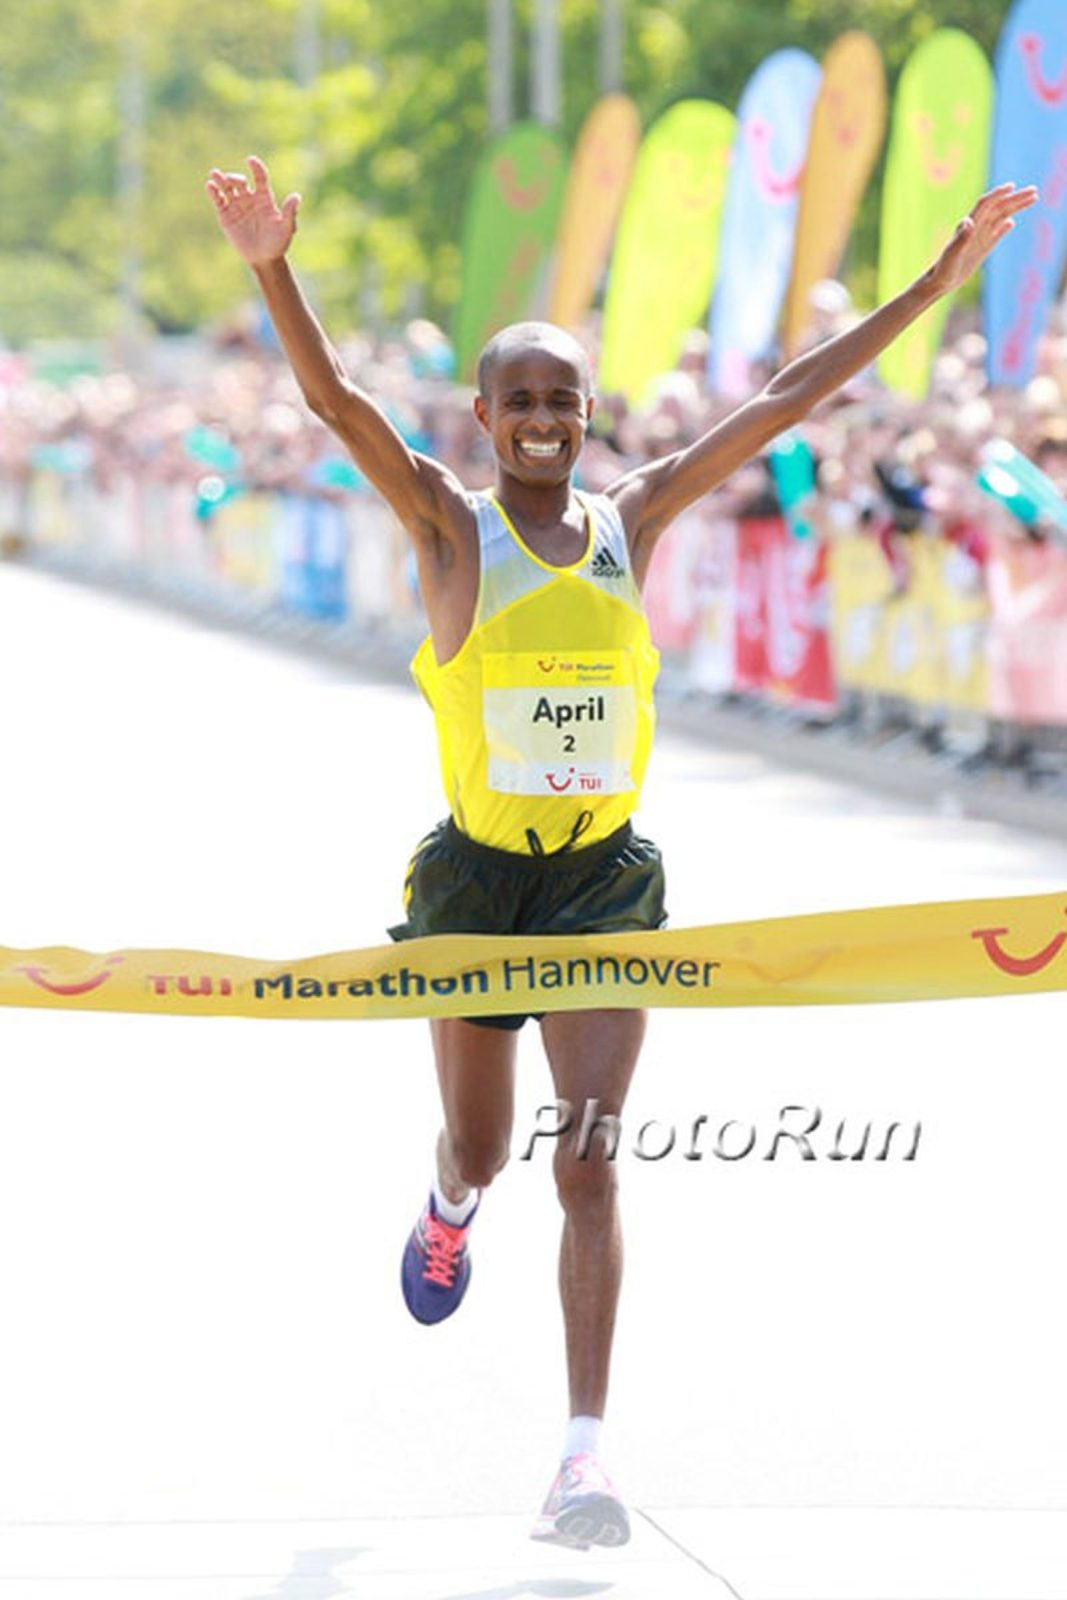 South African marathoner withdraws from Moscow 2013